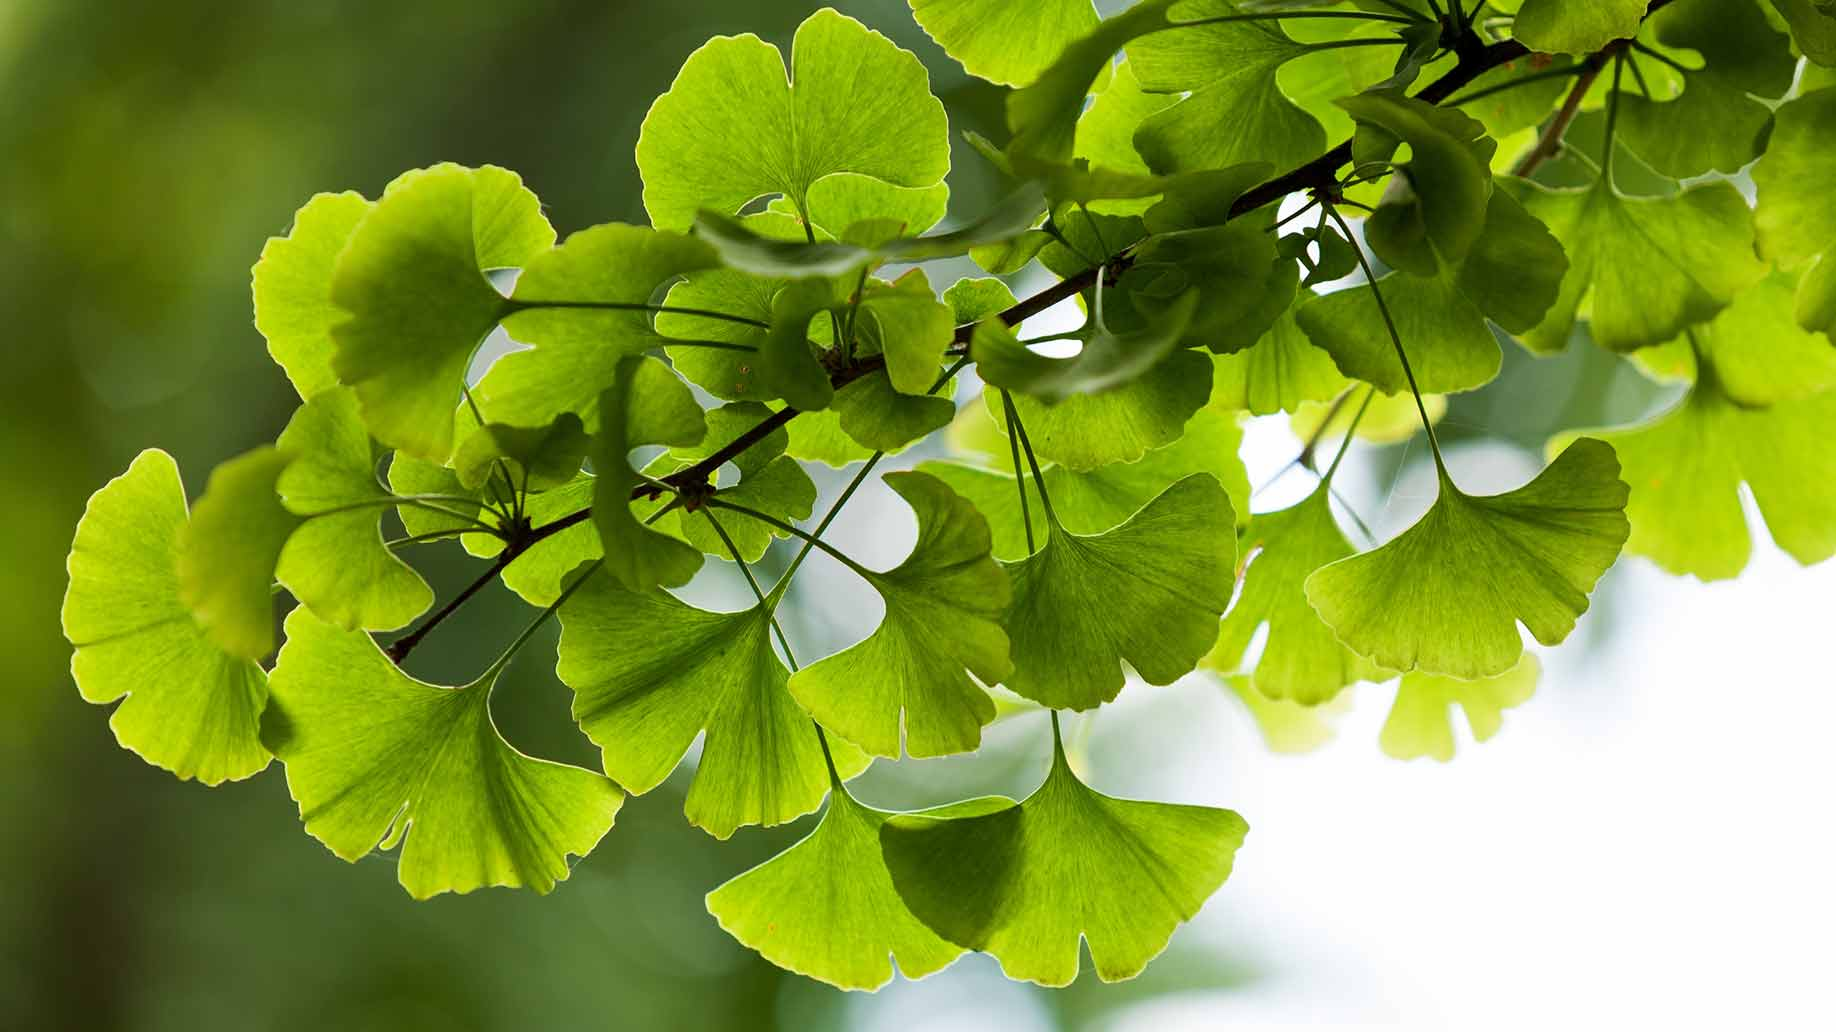 ginkgo biloba herb hormone imbalance menopause menses periods pms natural remedies